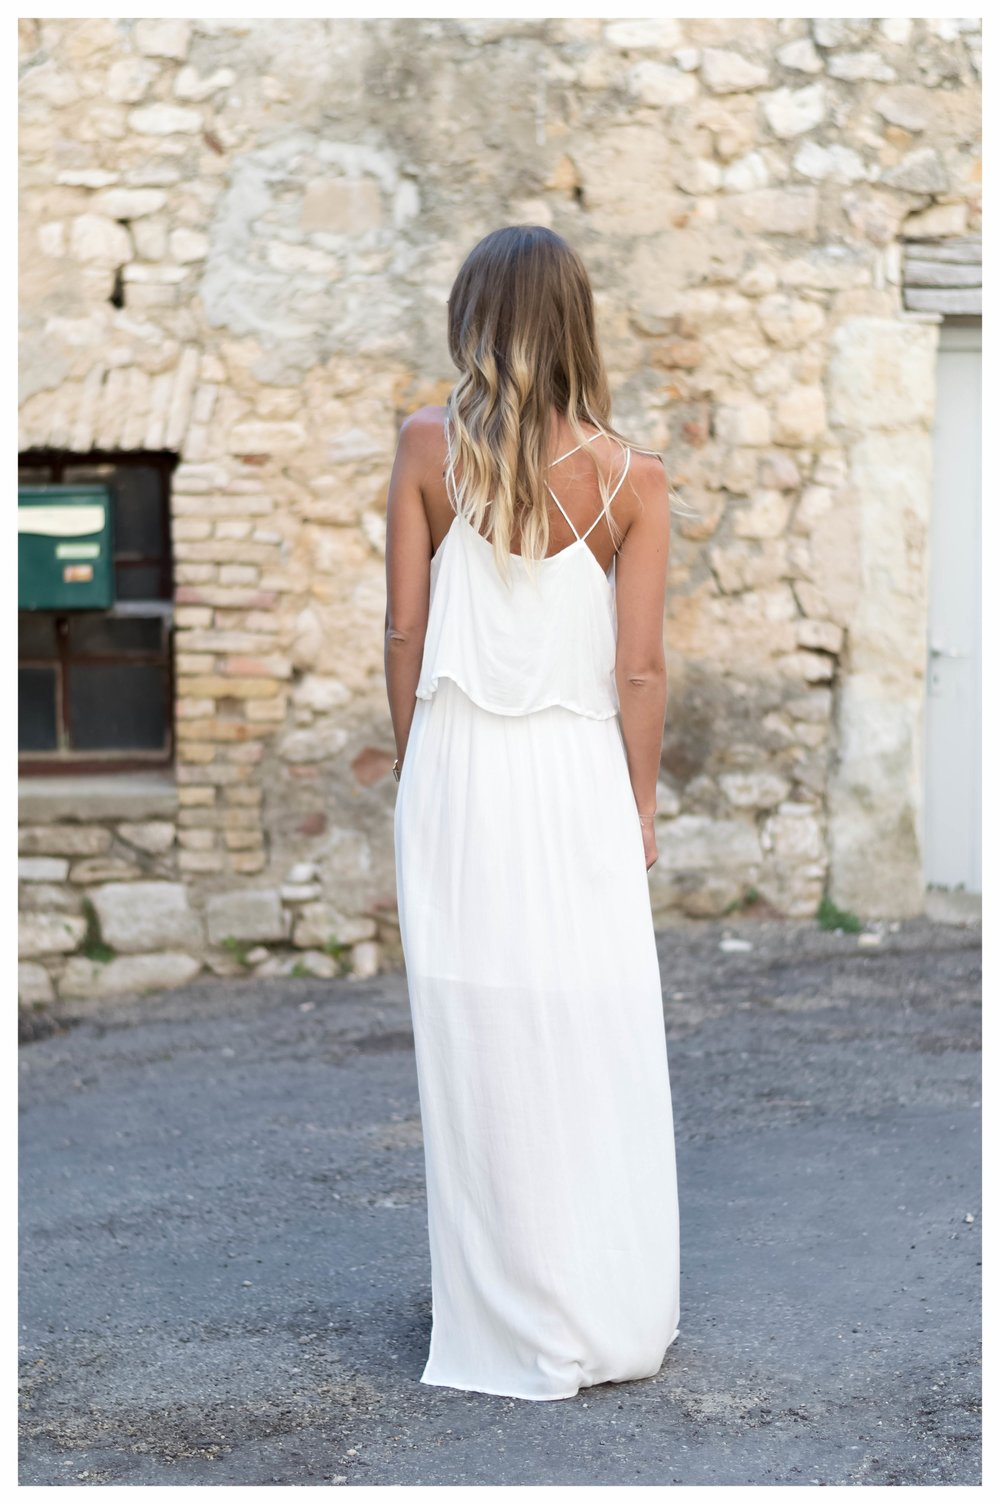 White Dress - OSIARAH.COM (9 sur 16).jpg